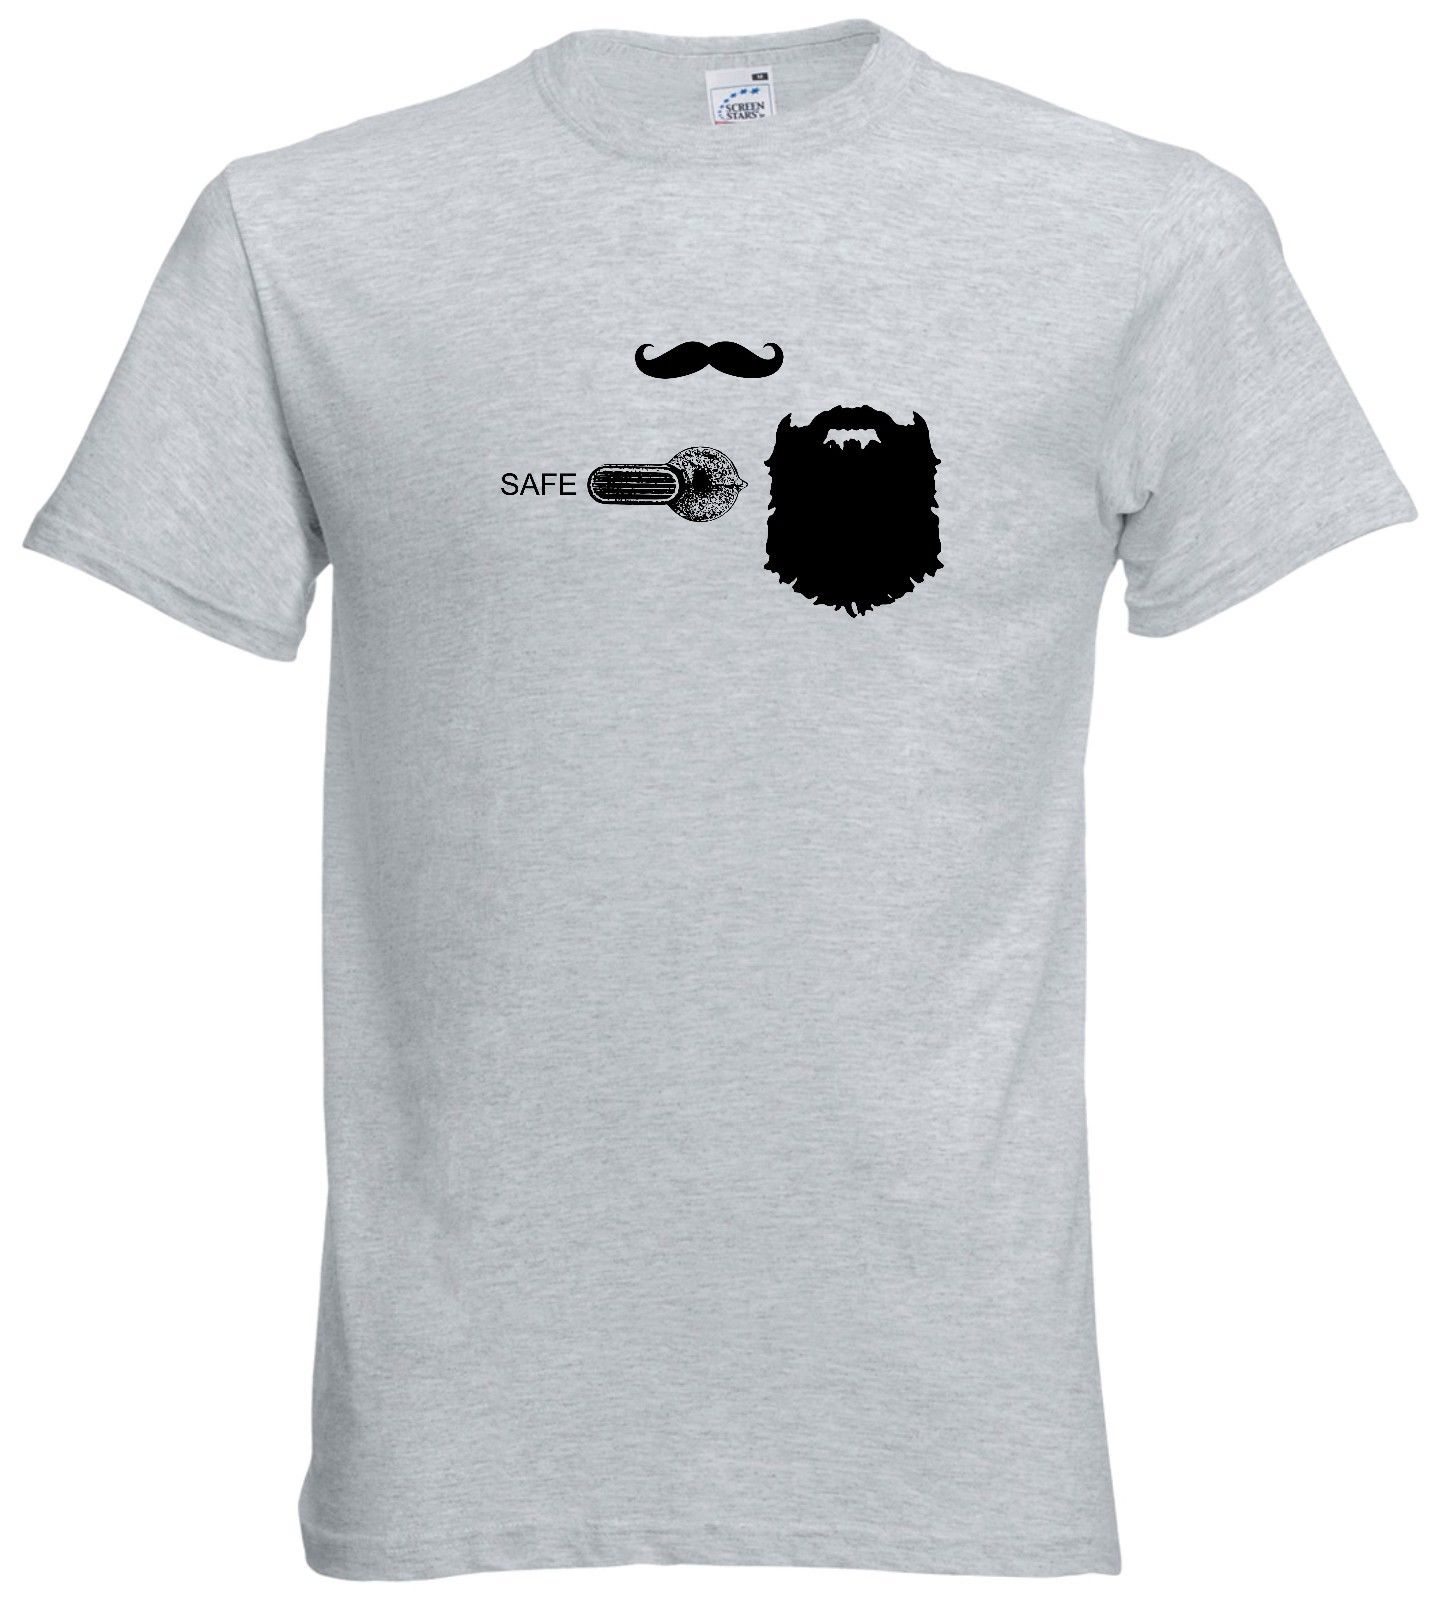 2019 Summer Hot Sale Men T-<font><b>shirt</b></font> <font><b>AR</b></font> 15 Full Beard Safety Selector T <font><b>Shirt</b></font> Rifle M4 AR15 image